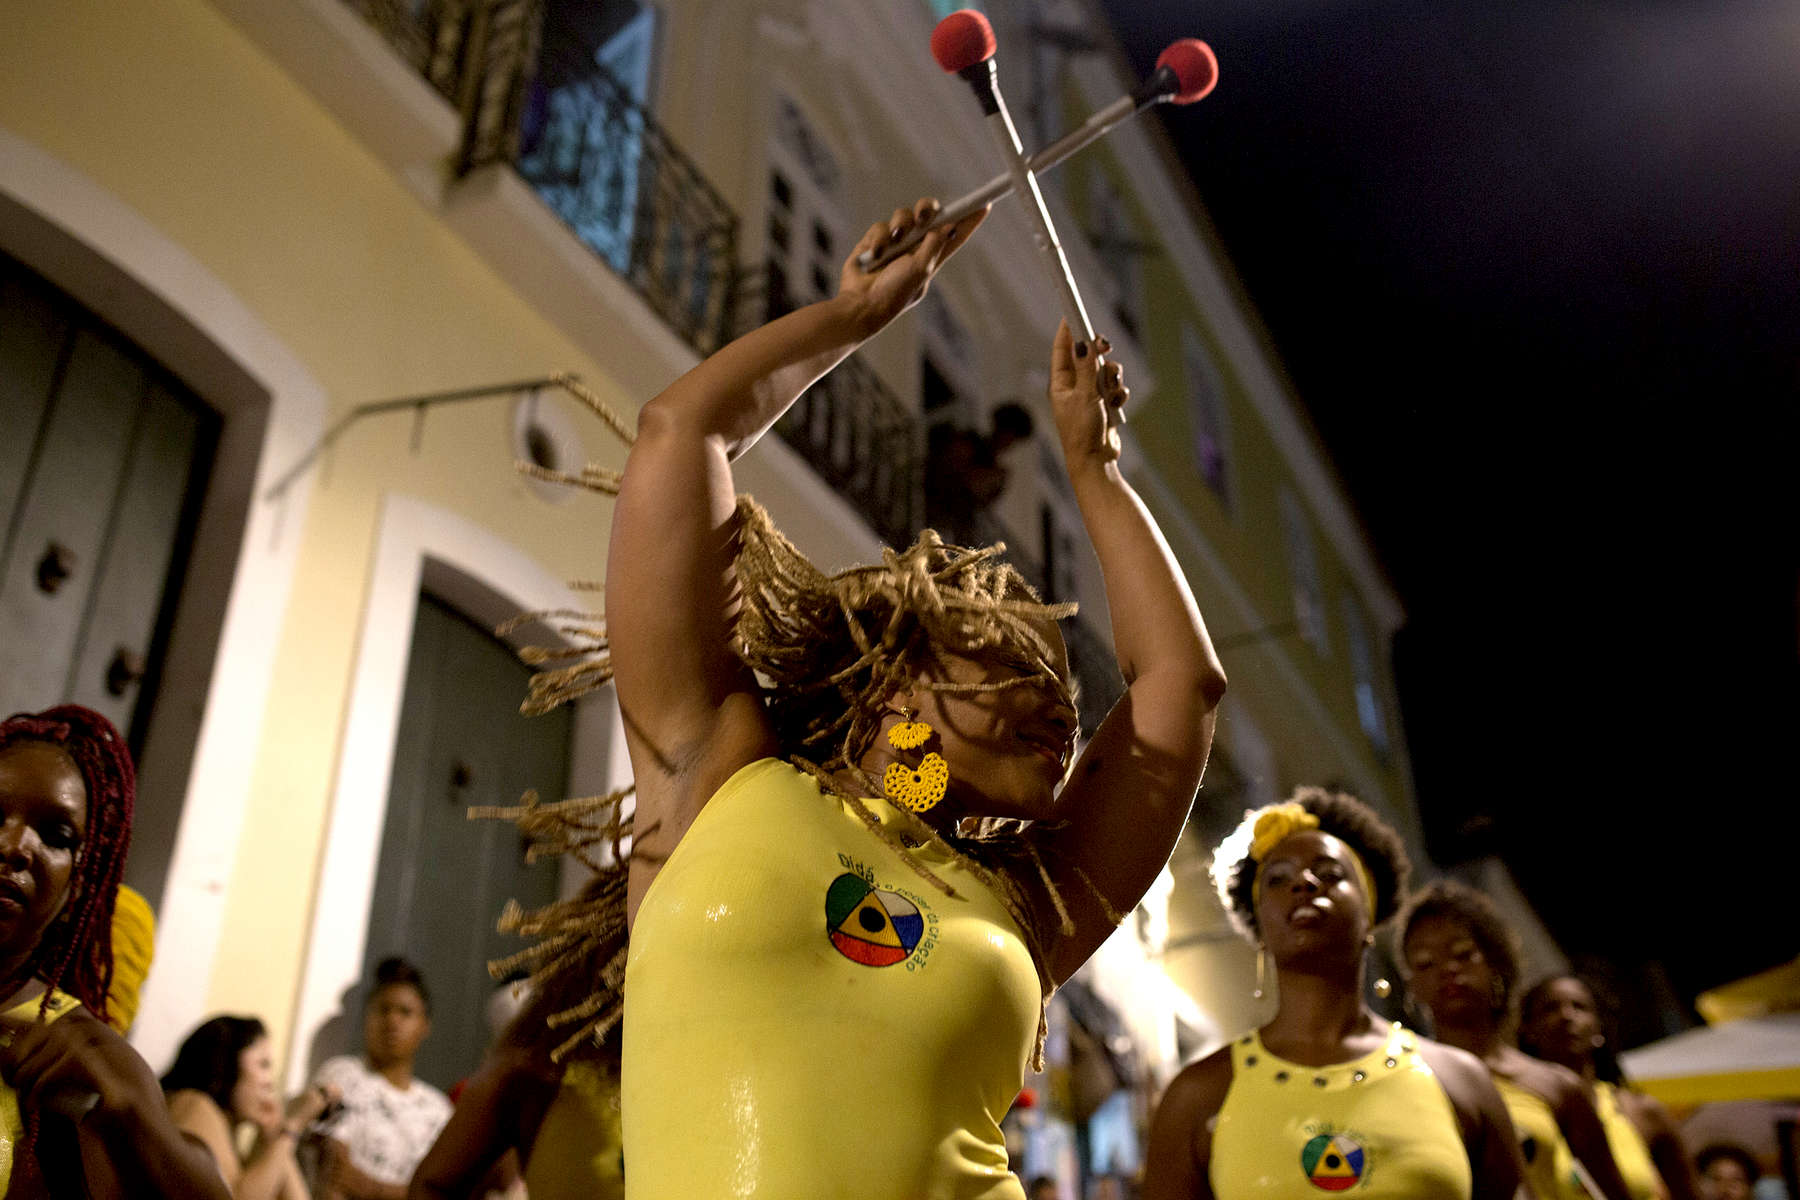 Víviam Caroline, centre, plays with Didá on the street outside Project Didá in Salvador's historic neighborhood, Pelourinho.